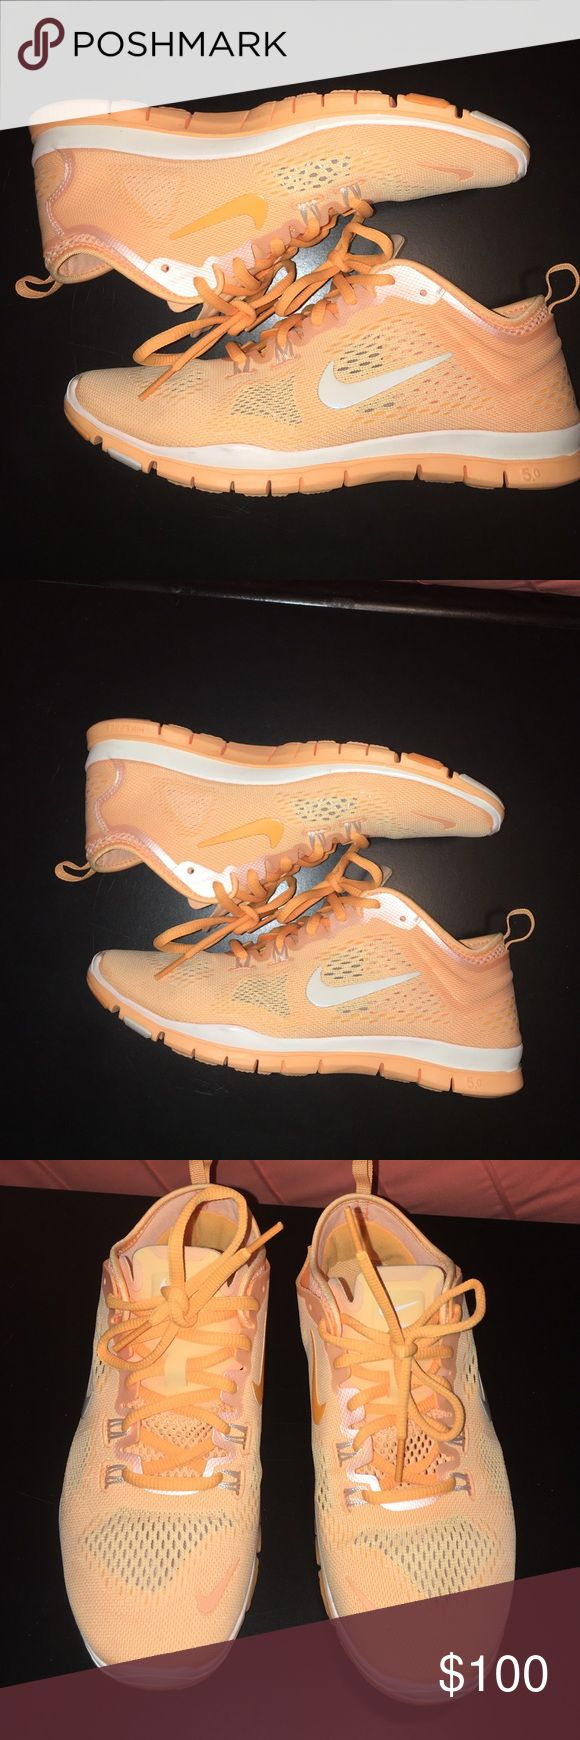 Nike free run Women's Nike free run size 7 1/2. Excellent condition only worn a few times! Nike Shoes Sneakers